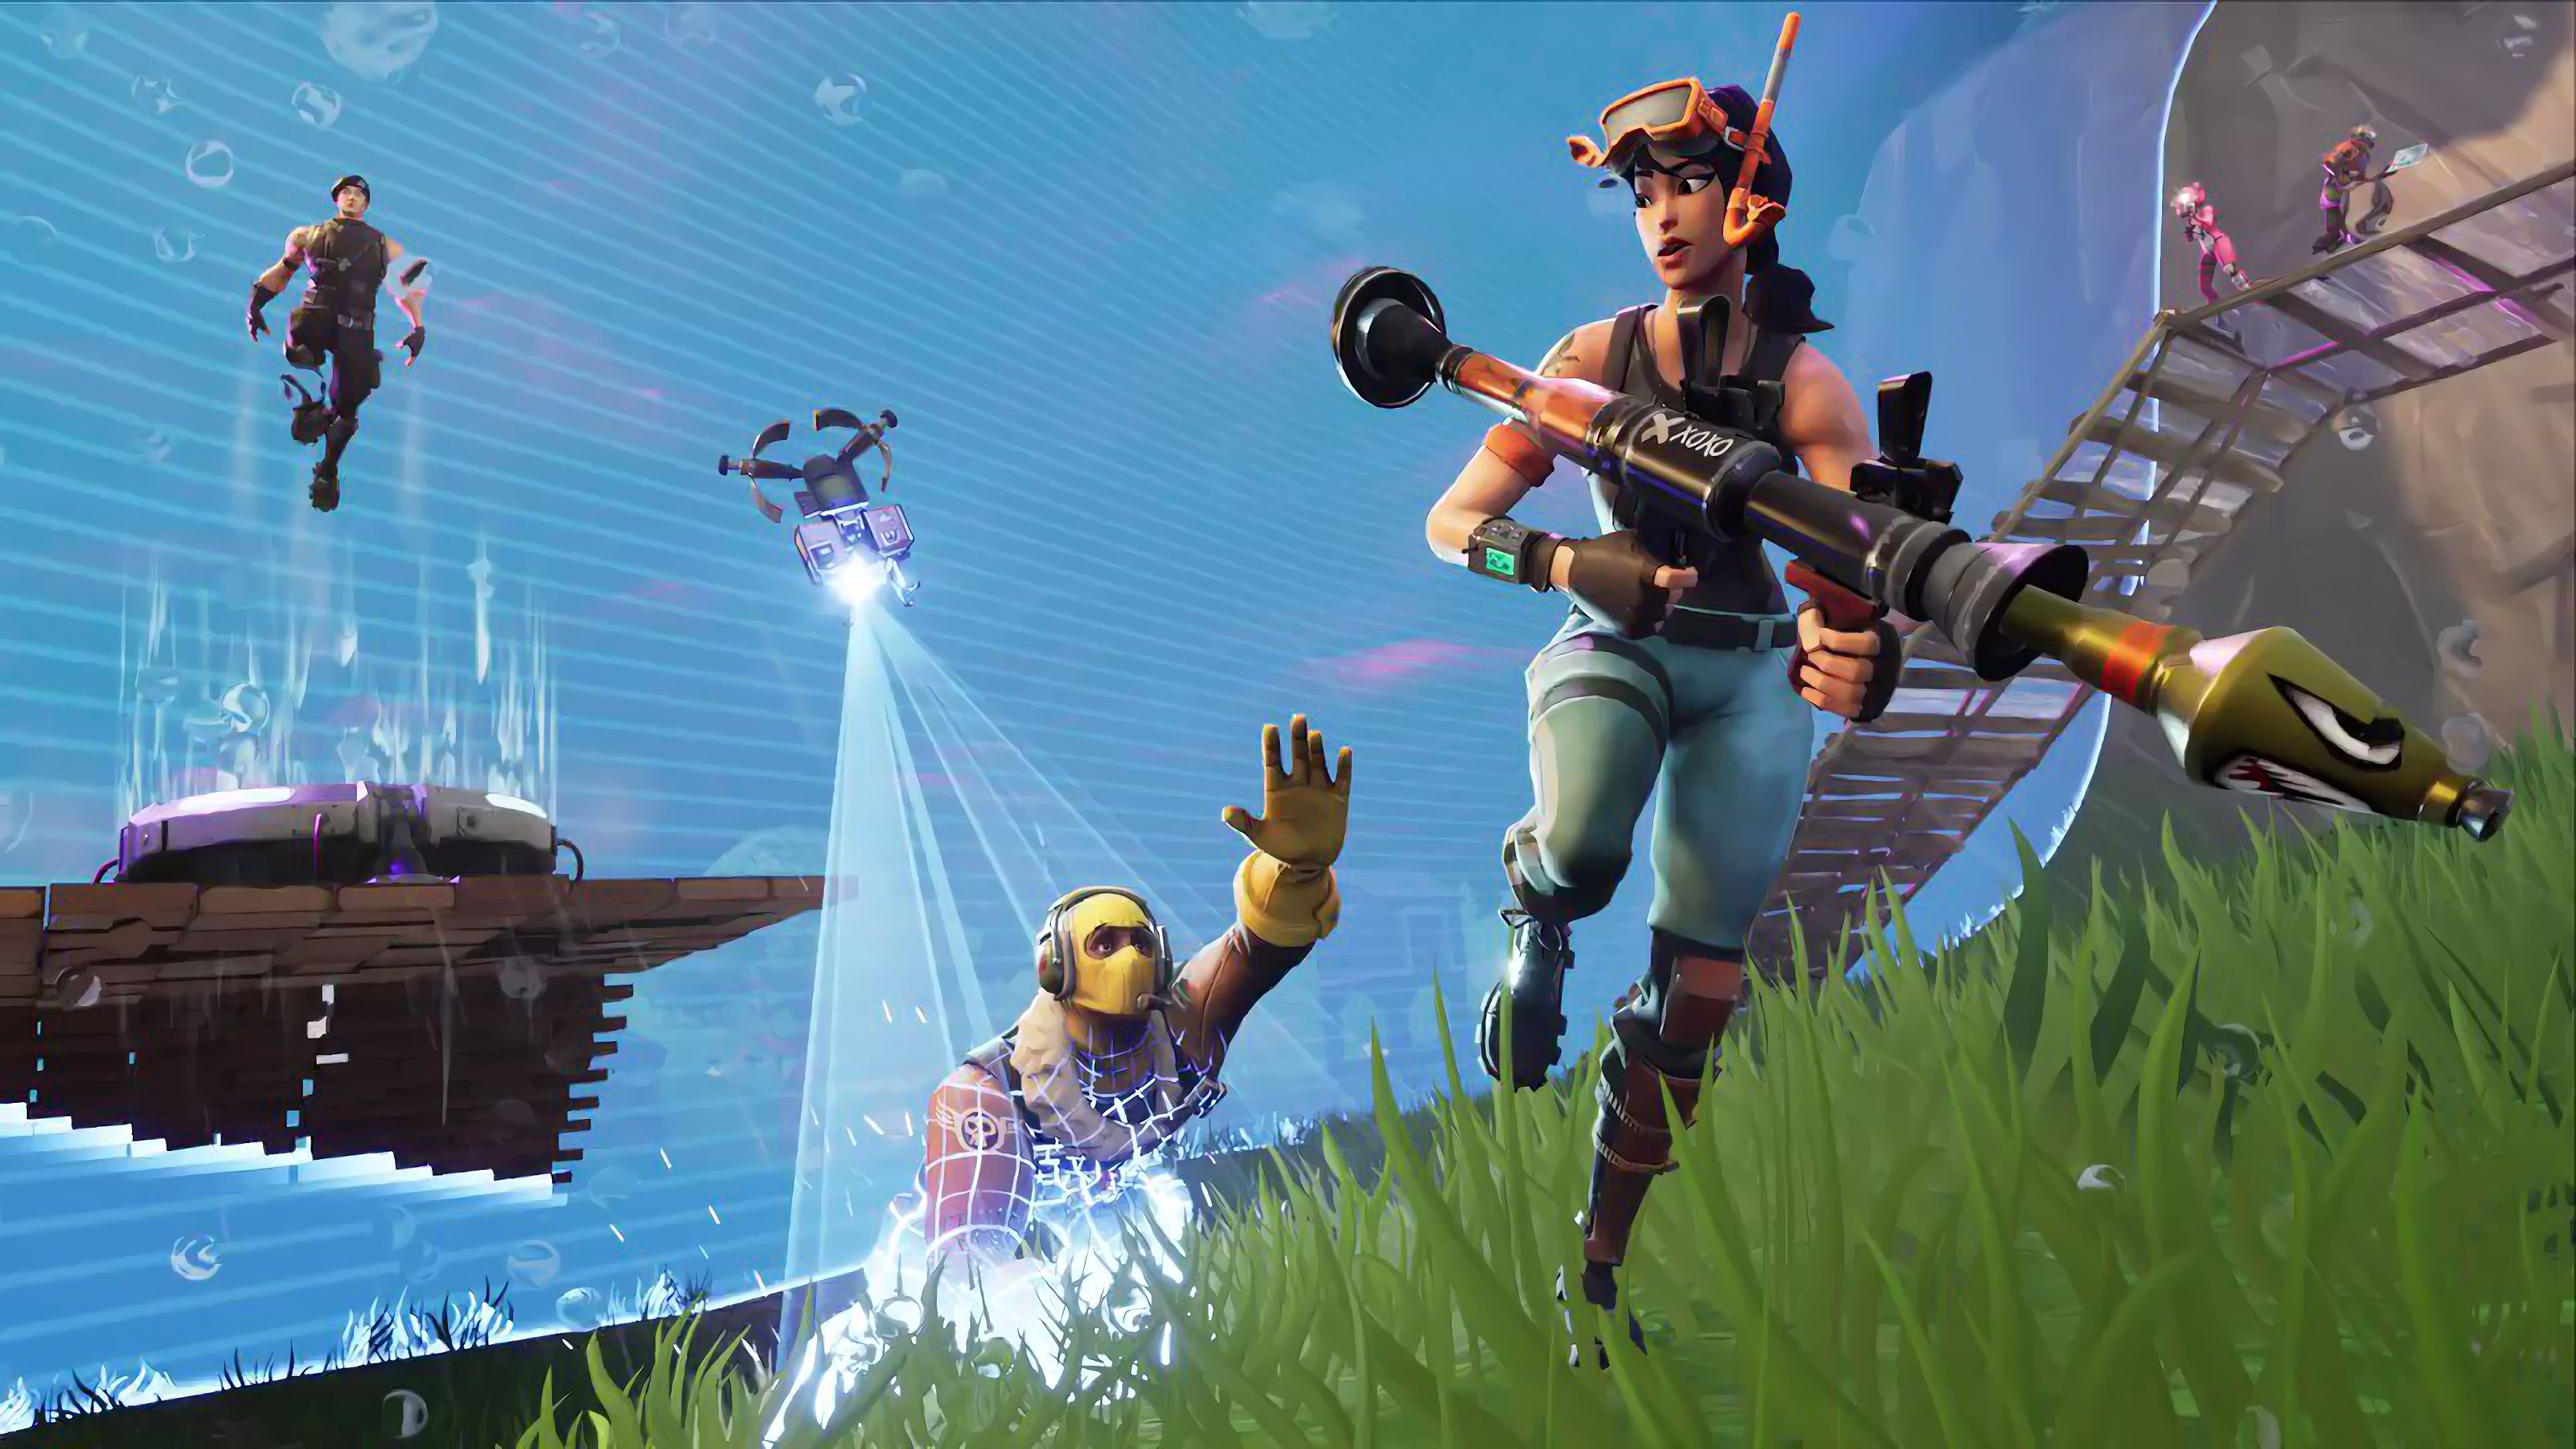 Fortnite Wallpapers Trumpwallpapers